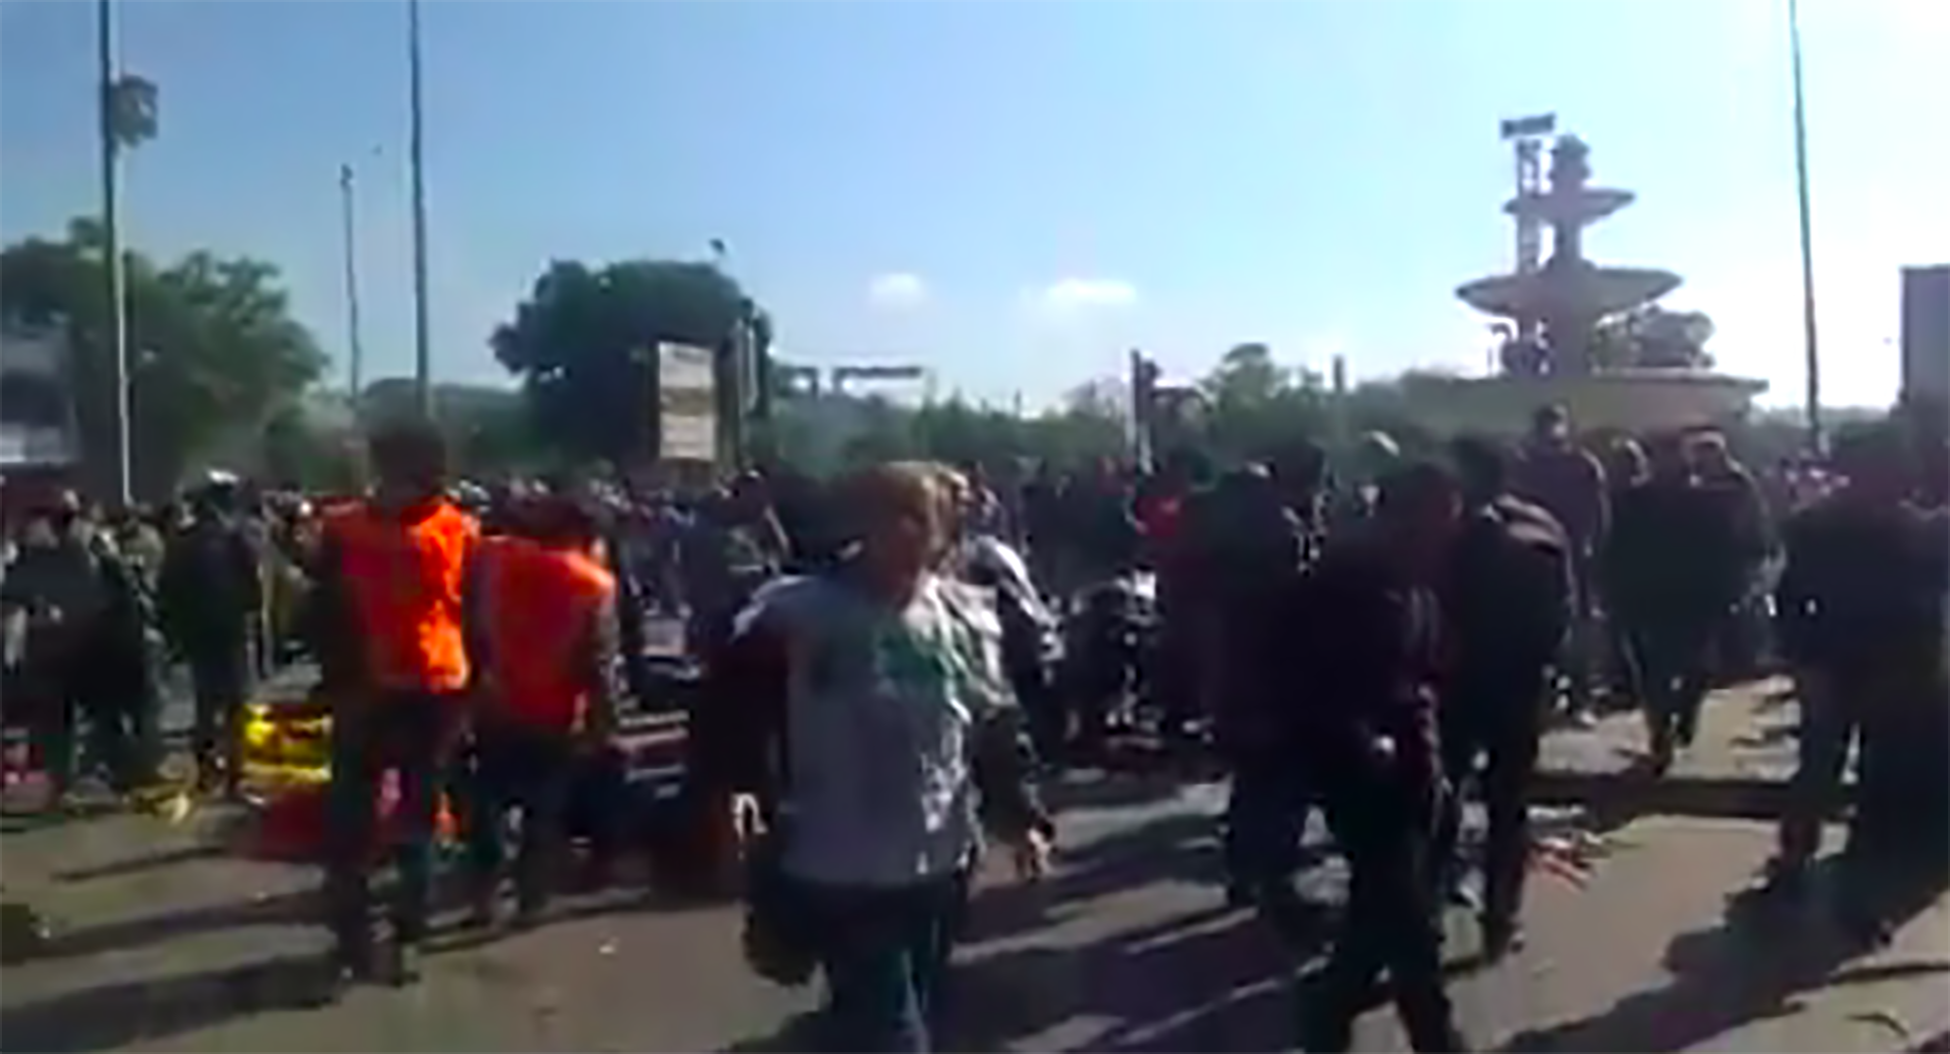 RT @mashable: Deadly explosions rip through peace rally in Turkish capital Ankara http://t.co/RgCkoo4aLO http://t.co/GNmq3e3Y5d